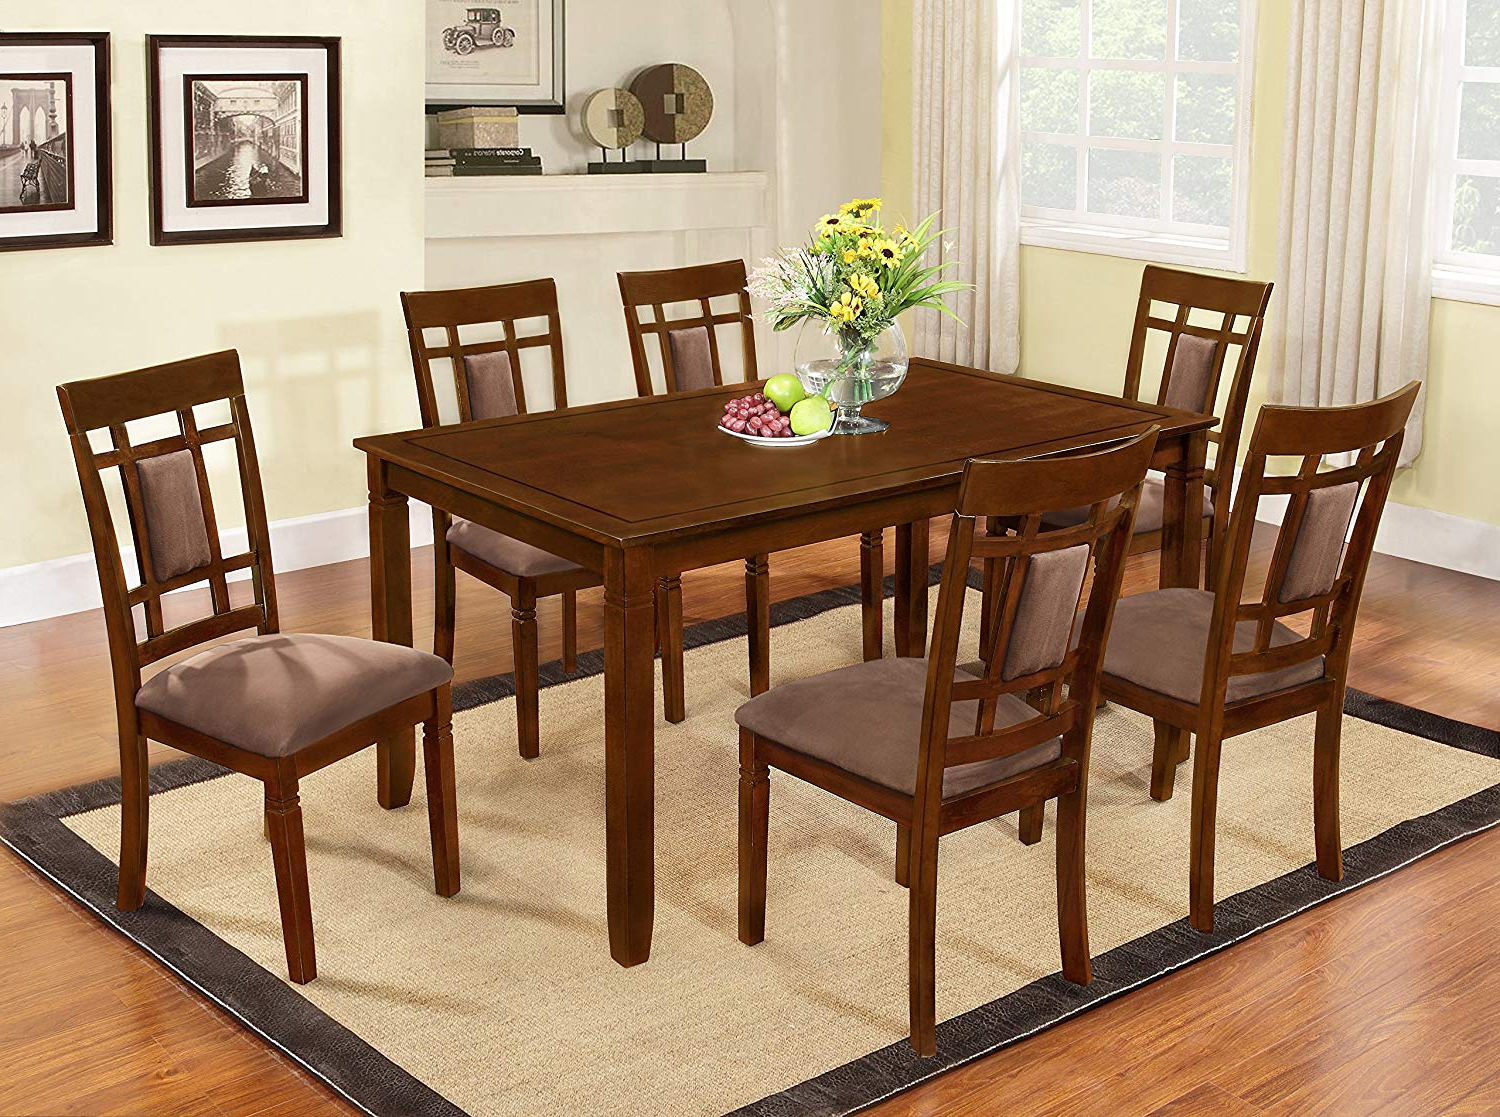 West Hill Family Table 3 Piece Dining Sets With Regard To Fashionable Amazon – The Room Style 7 Piece Cherry Finish Solid Wood Dining (View 23 of 25)